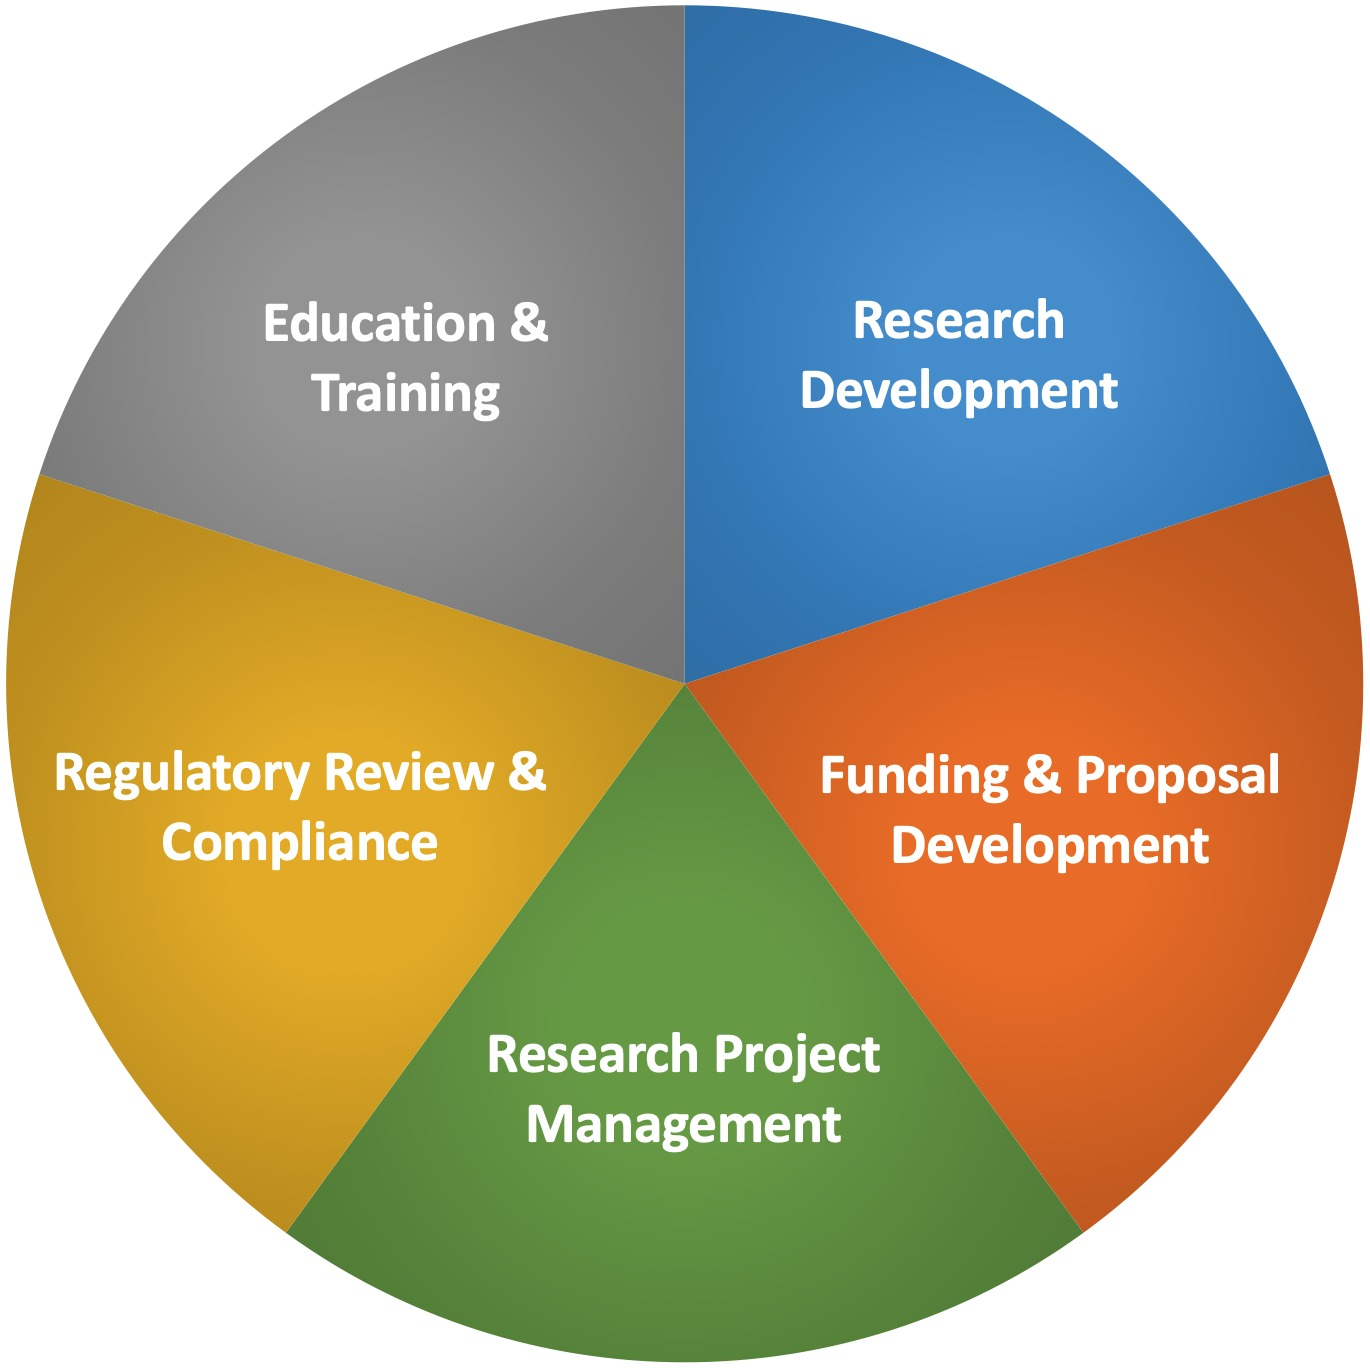 resources-for-researchers-pie